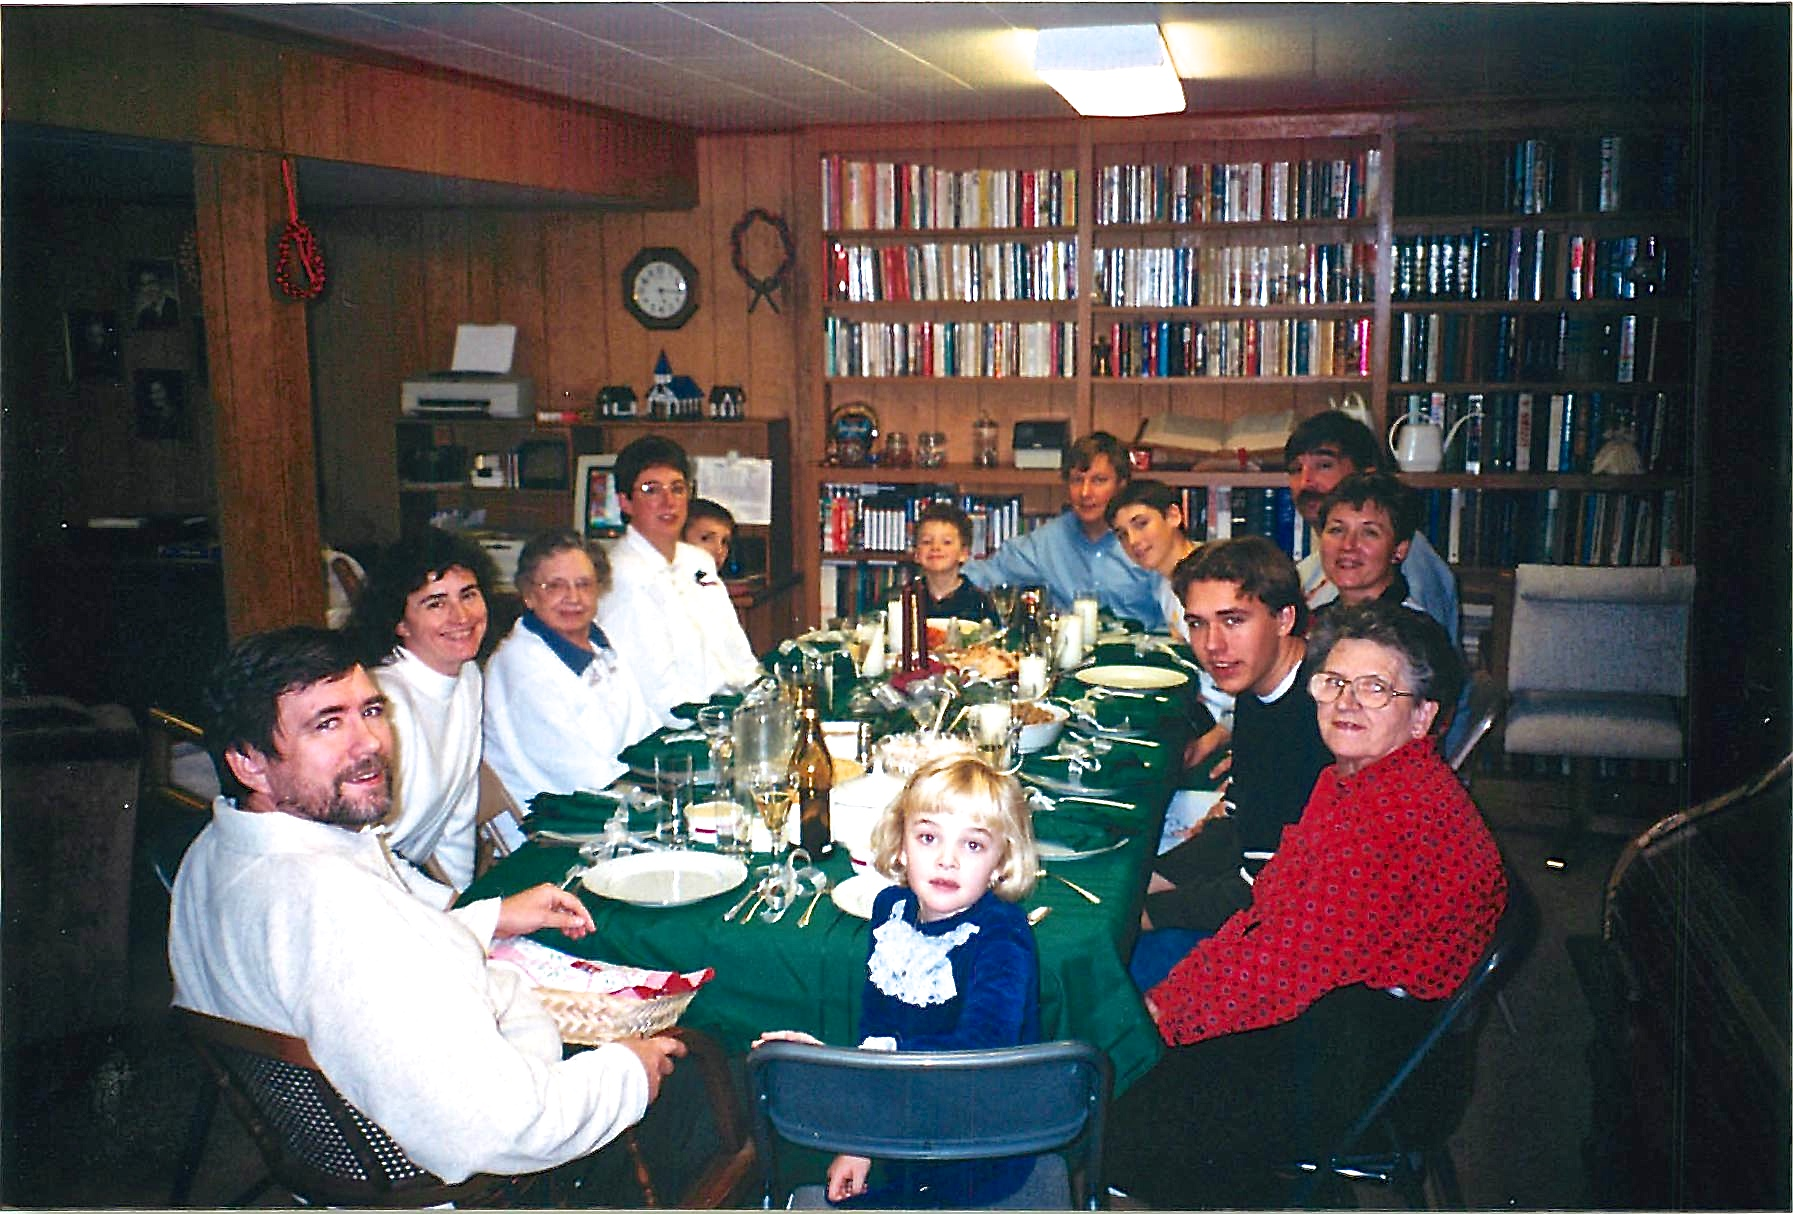 John, Ann, Helen, Jill, Nick, Ben, John, Jason, Paul, Cindy, Greg, Mary Lou & Kathleen 1998 Xmas Dubuque, Iowa